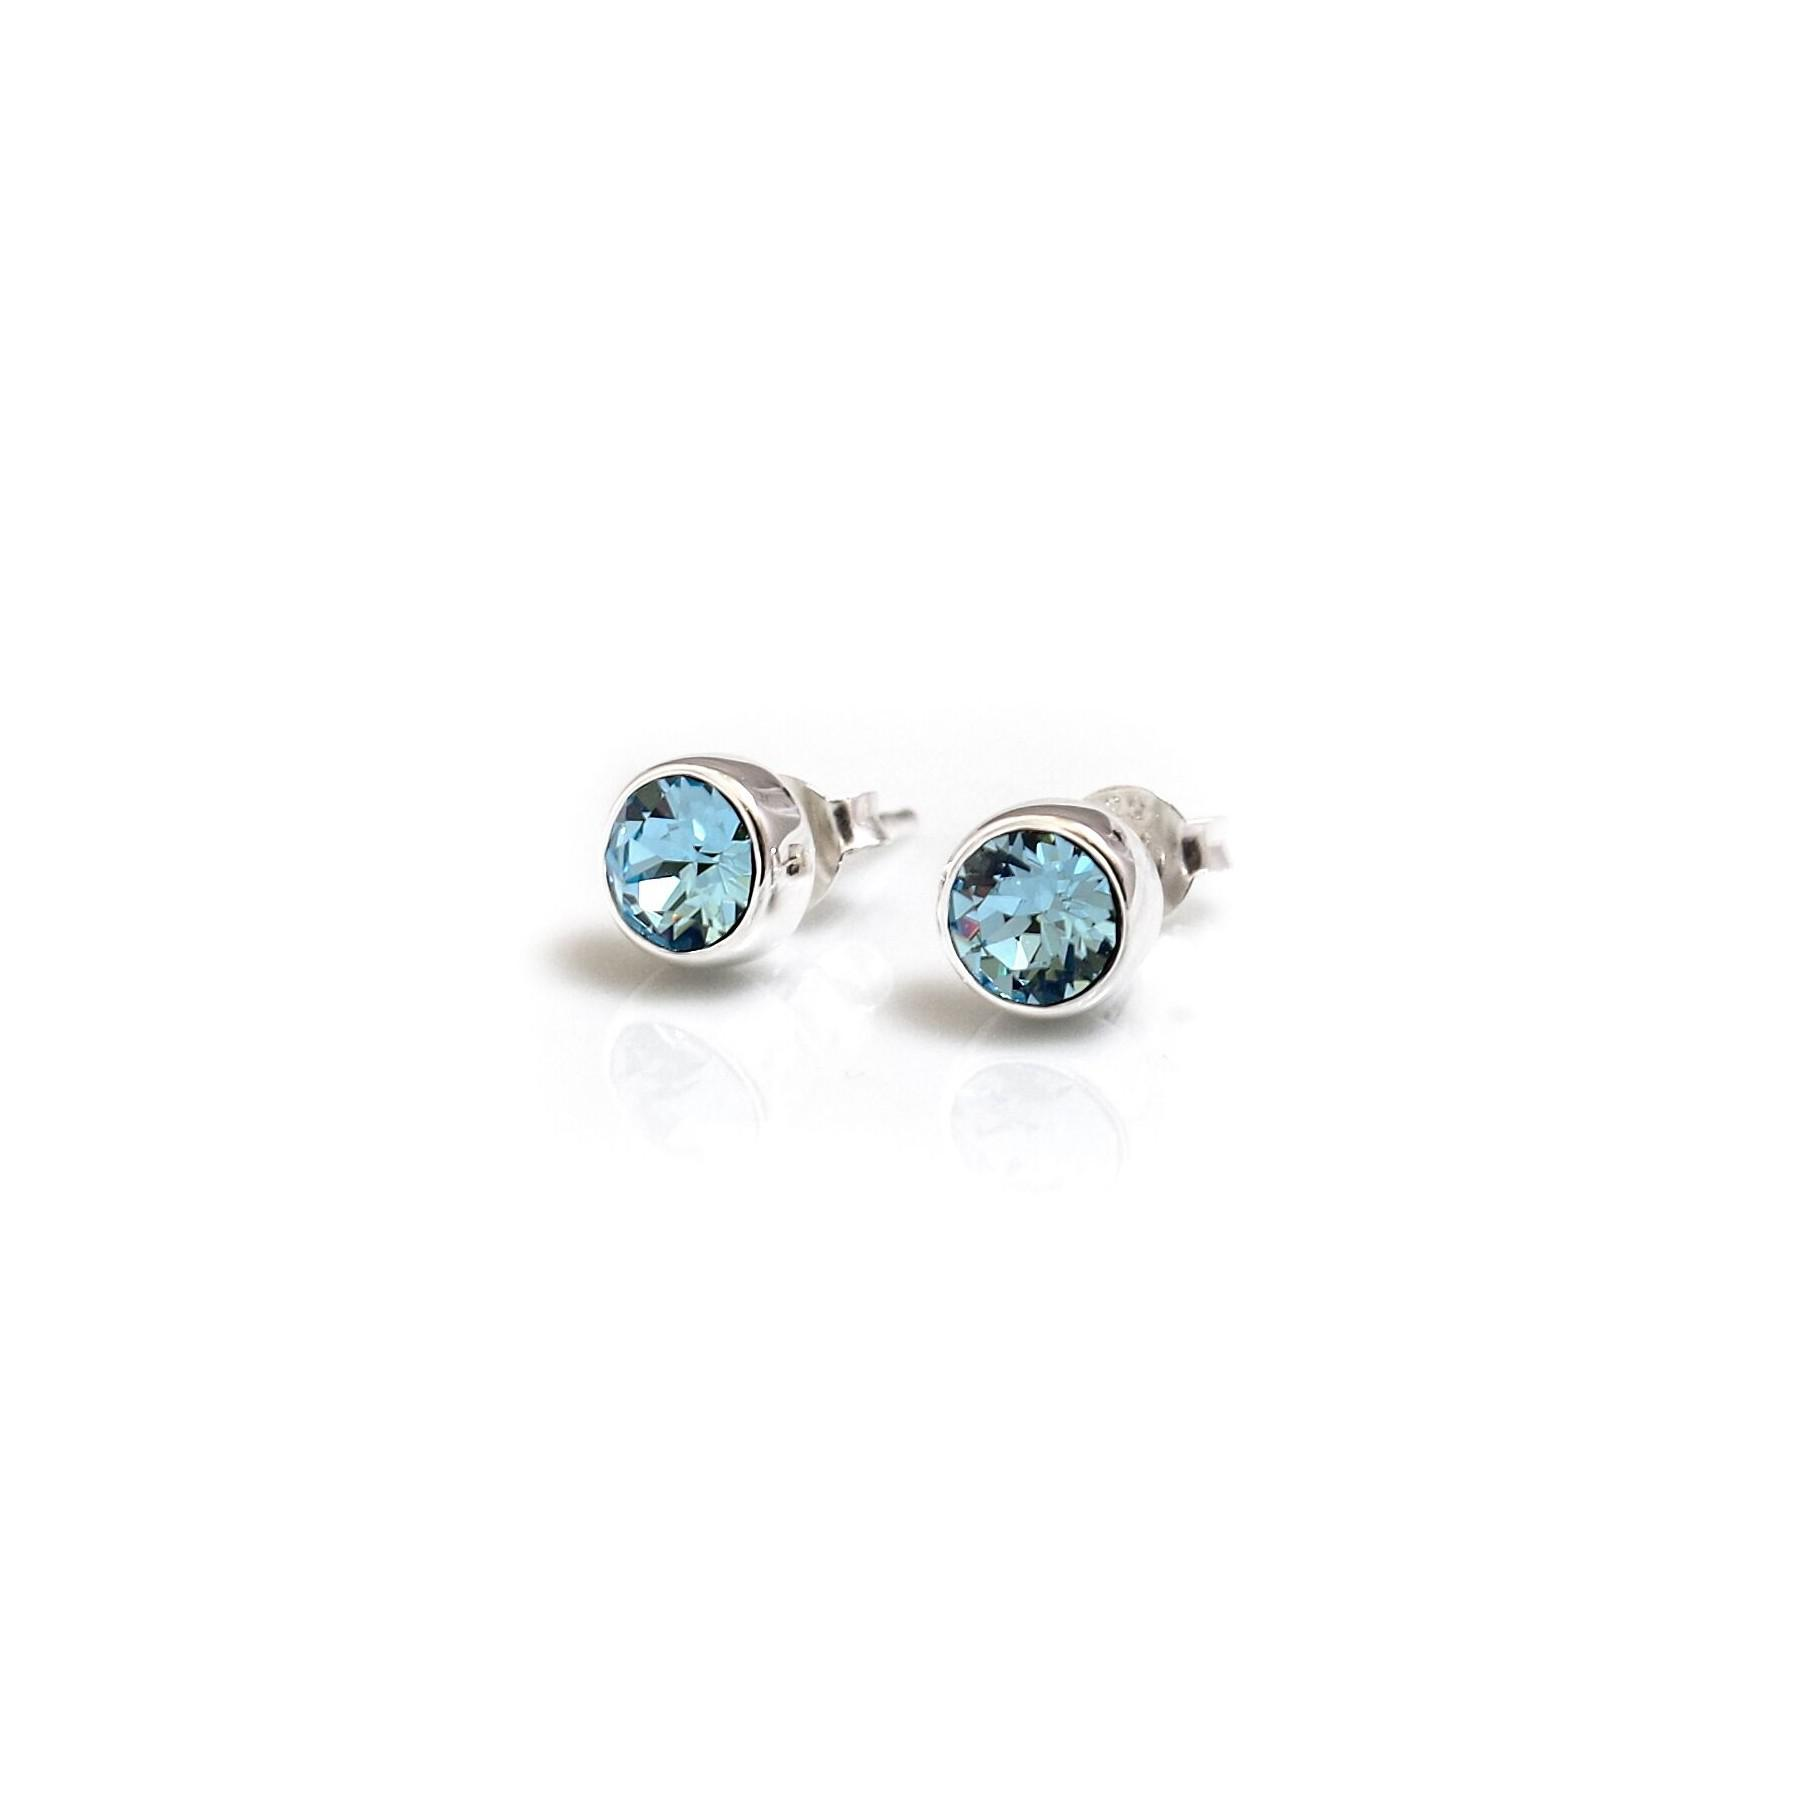 jewelry earrings aquamarine aqua stud marine eternity l studs